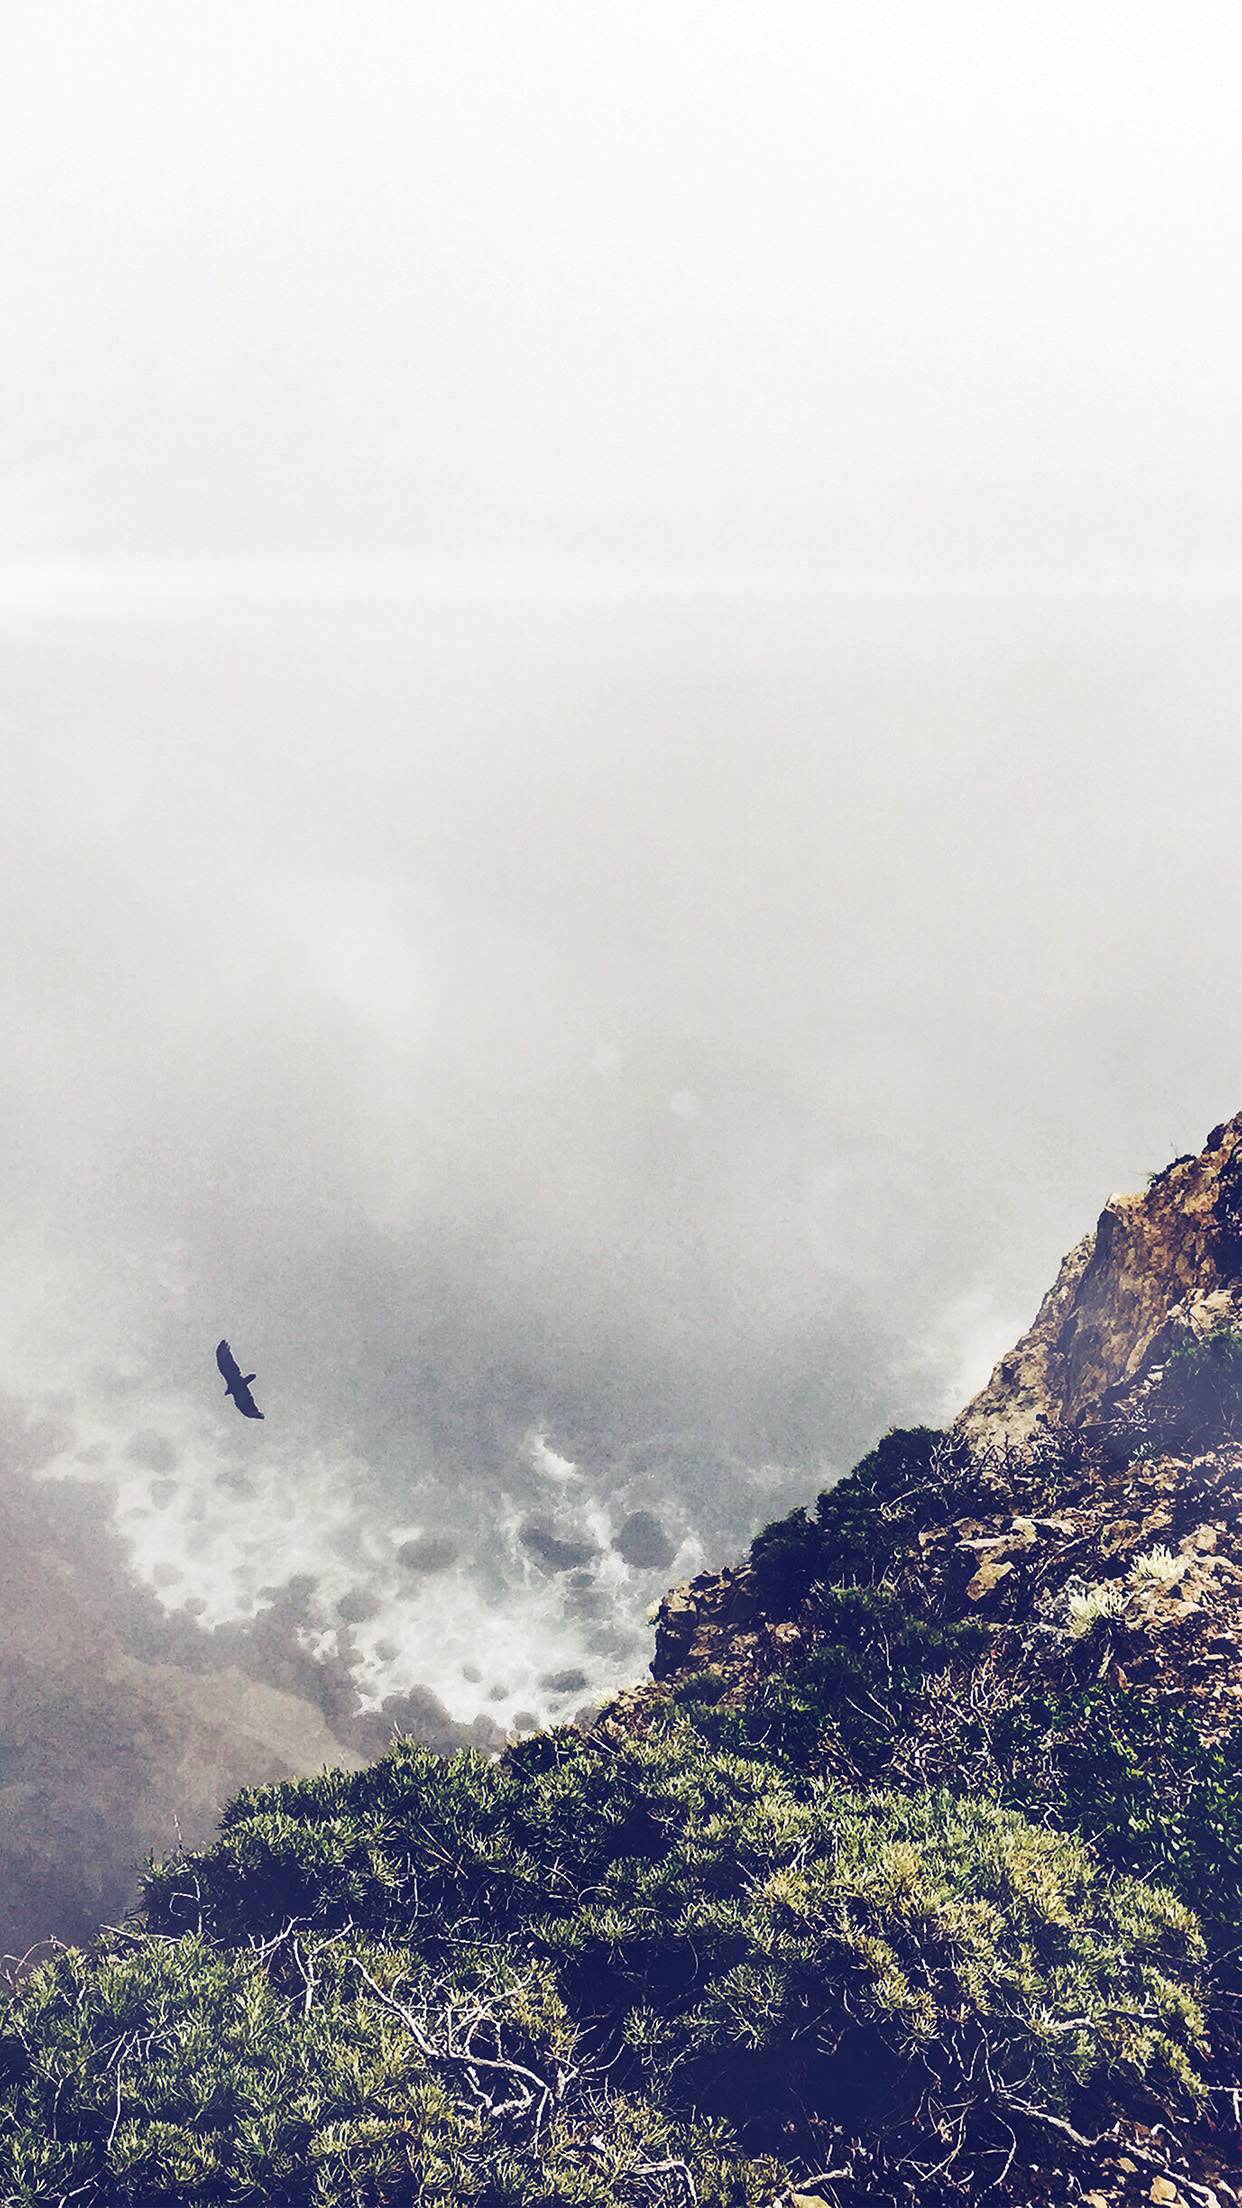 Mountain Bird Cliff Animal Fog Cloud Flare Android - Iphone 7 Plus Bright , HD Wallpaper & Backgrounds